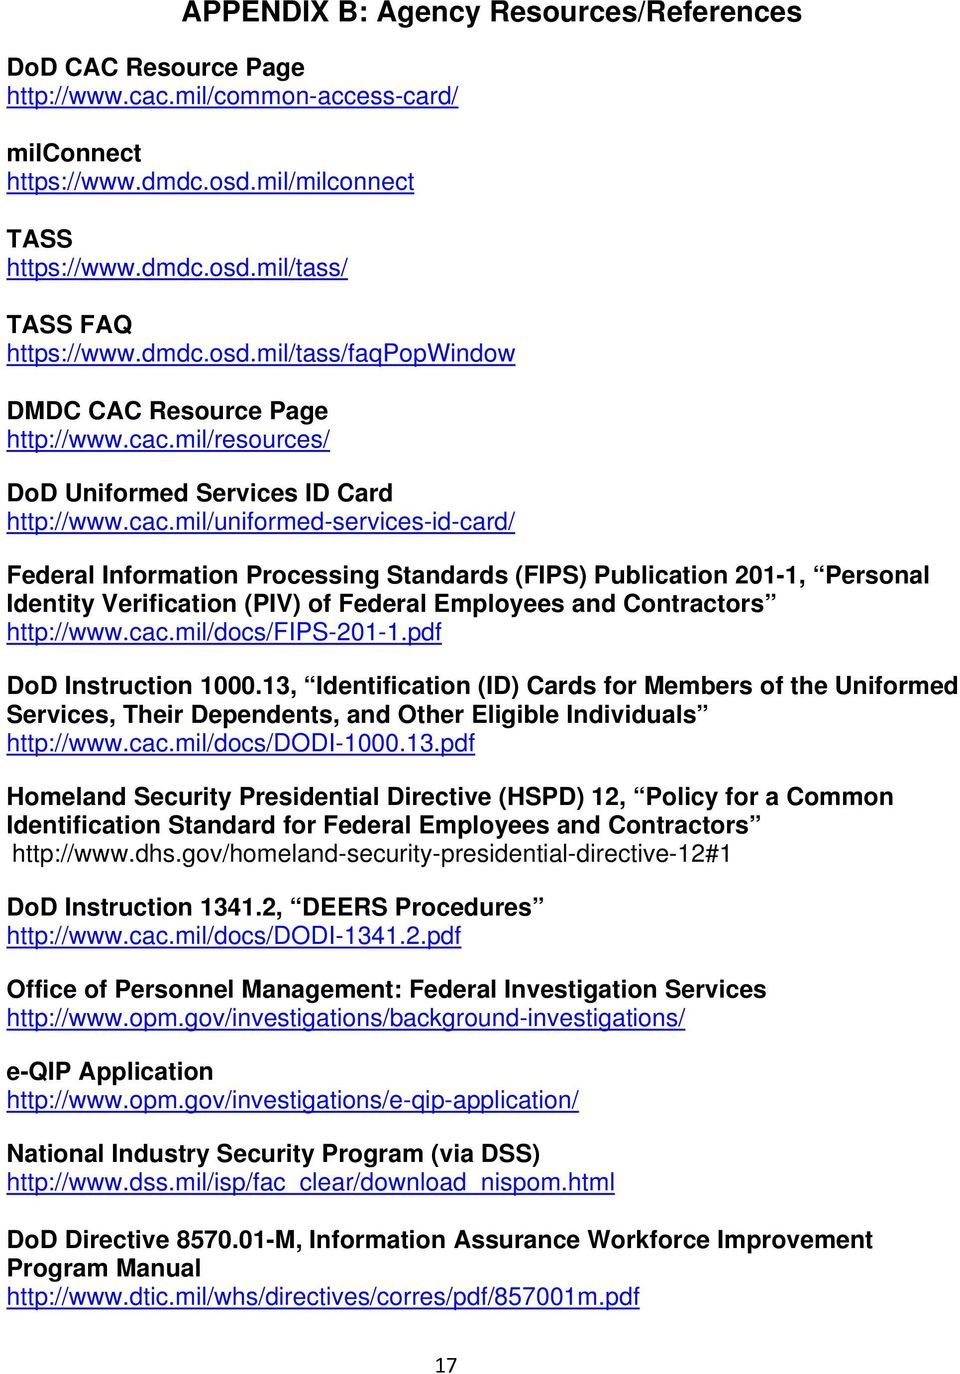 DEPARTMENT OF DEFENSE GUIDEBOOK FOR CAC-ELIGIBLE CONTRACTORS